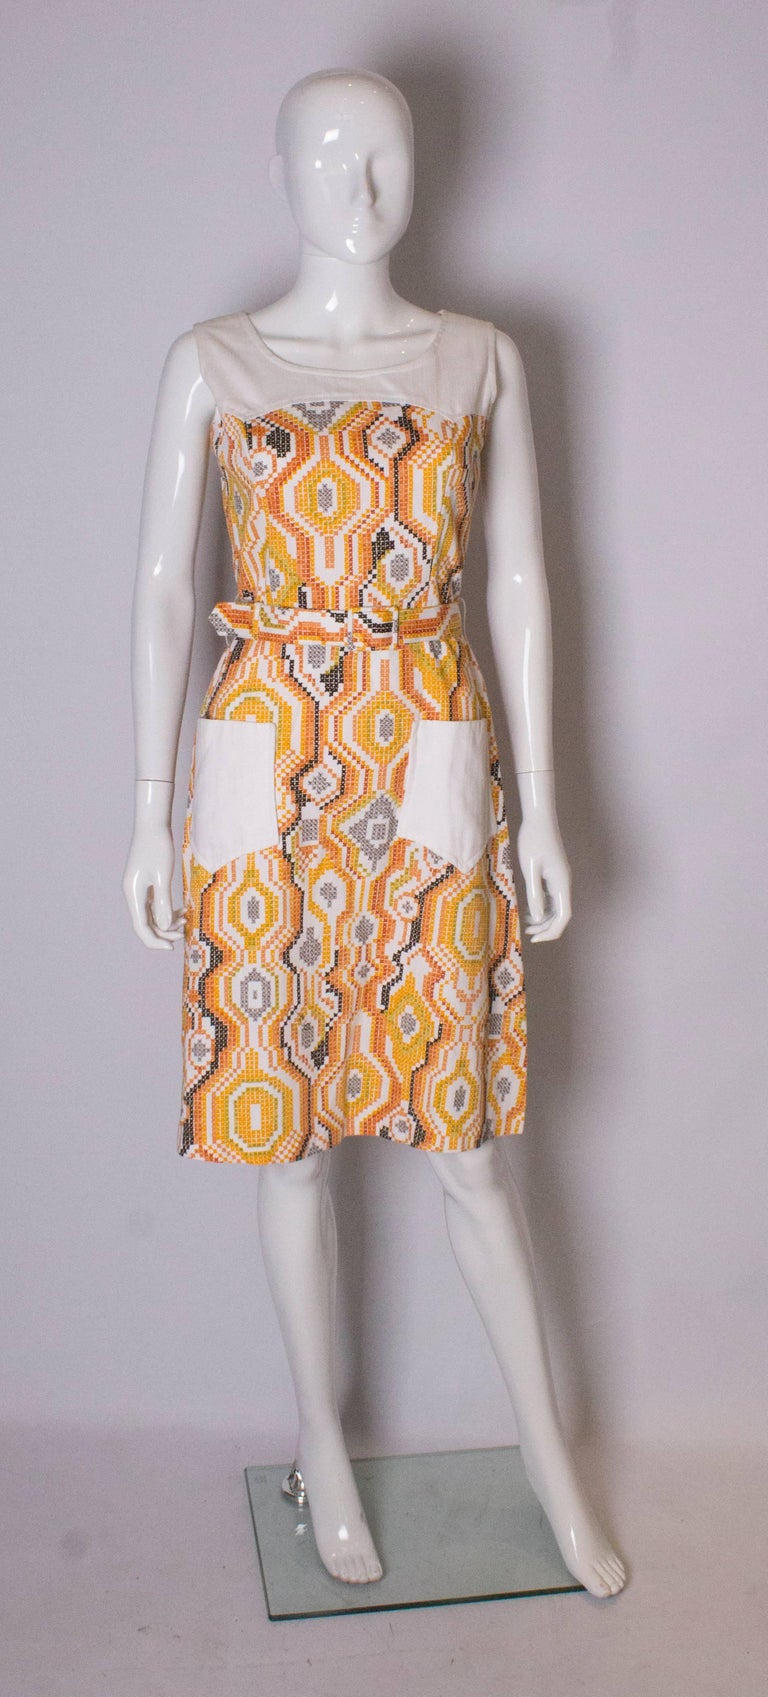 A great summwer dress by D L Barron. it is in a fun print of white, yellow and brown, with two large white pockets.